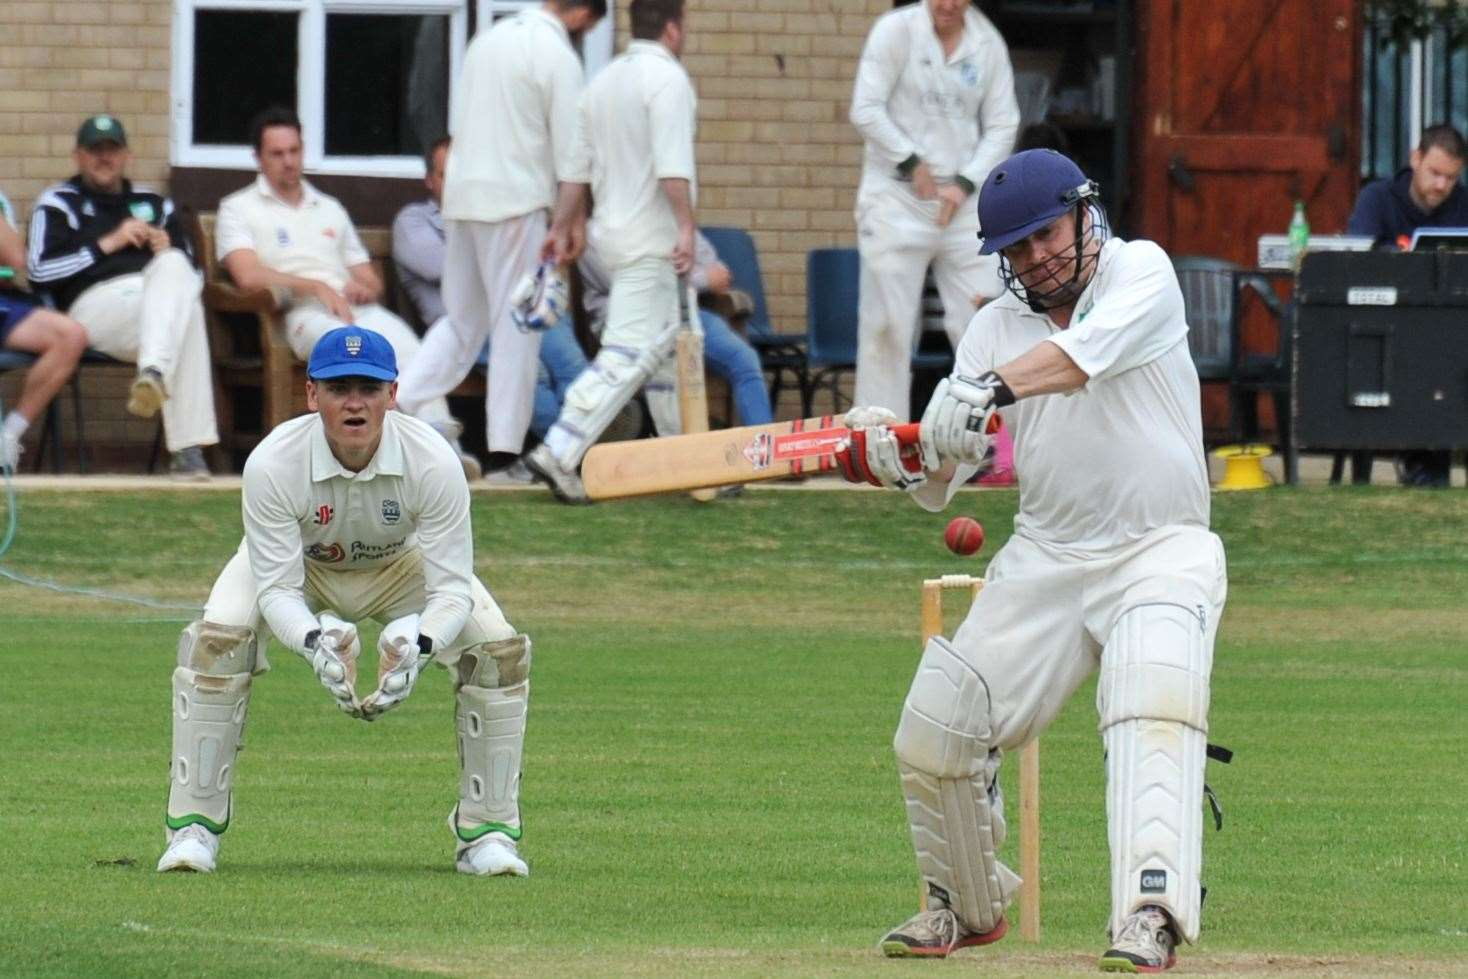 Uffington went top of Division Two of the Rutland League after victory over Bourne on Sunday. Photo: Alan Walters (11245409)